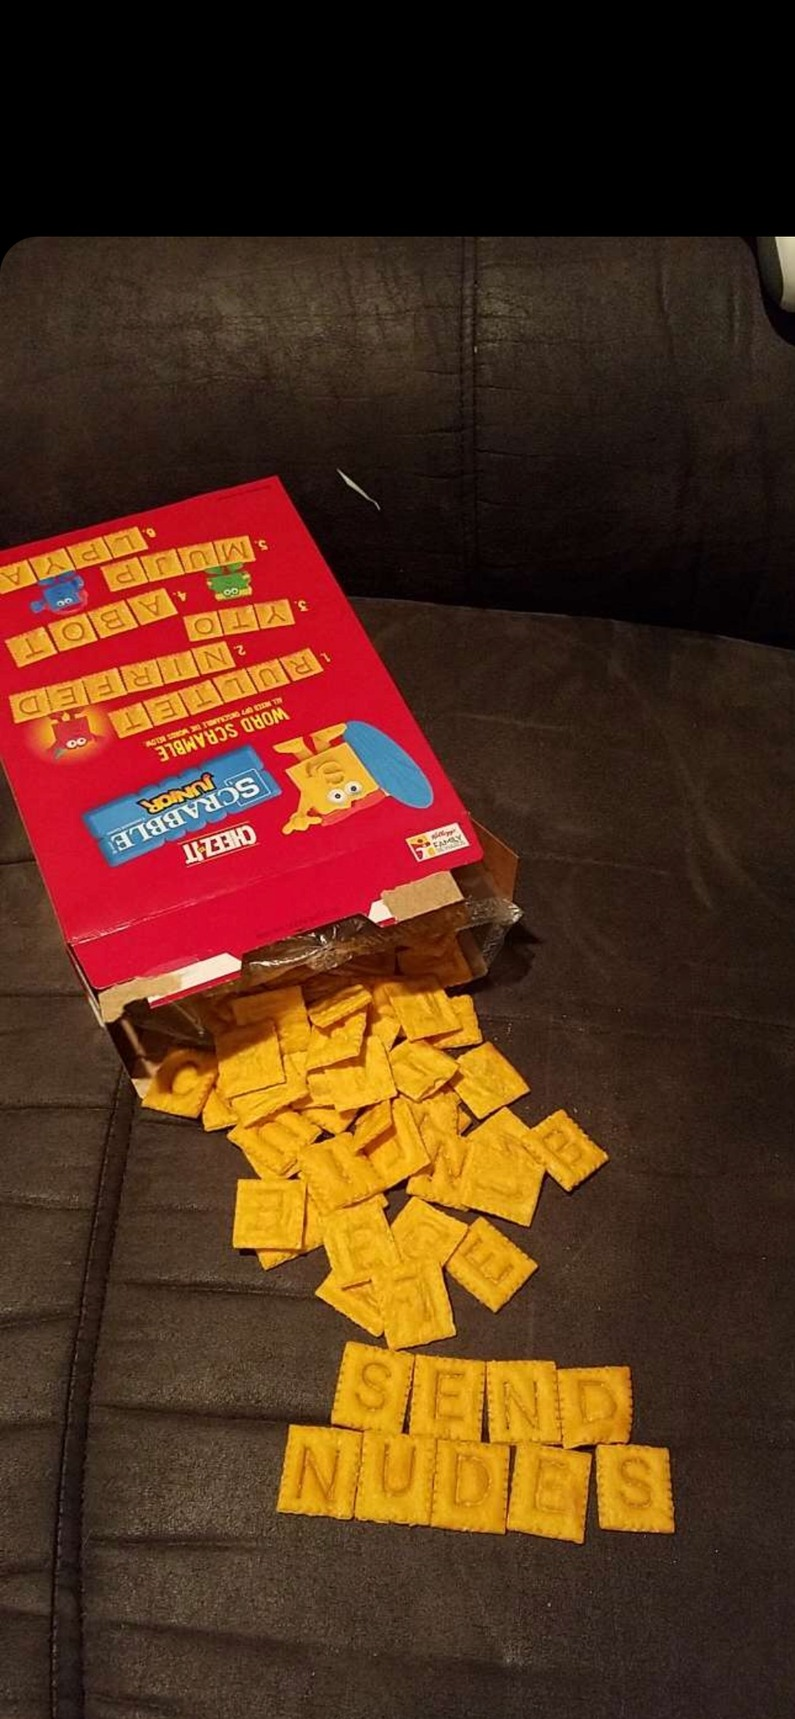 oh no I spilled my cheeze its - meme